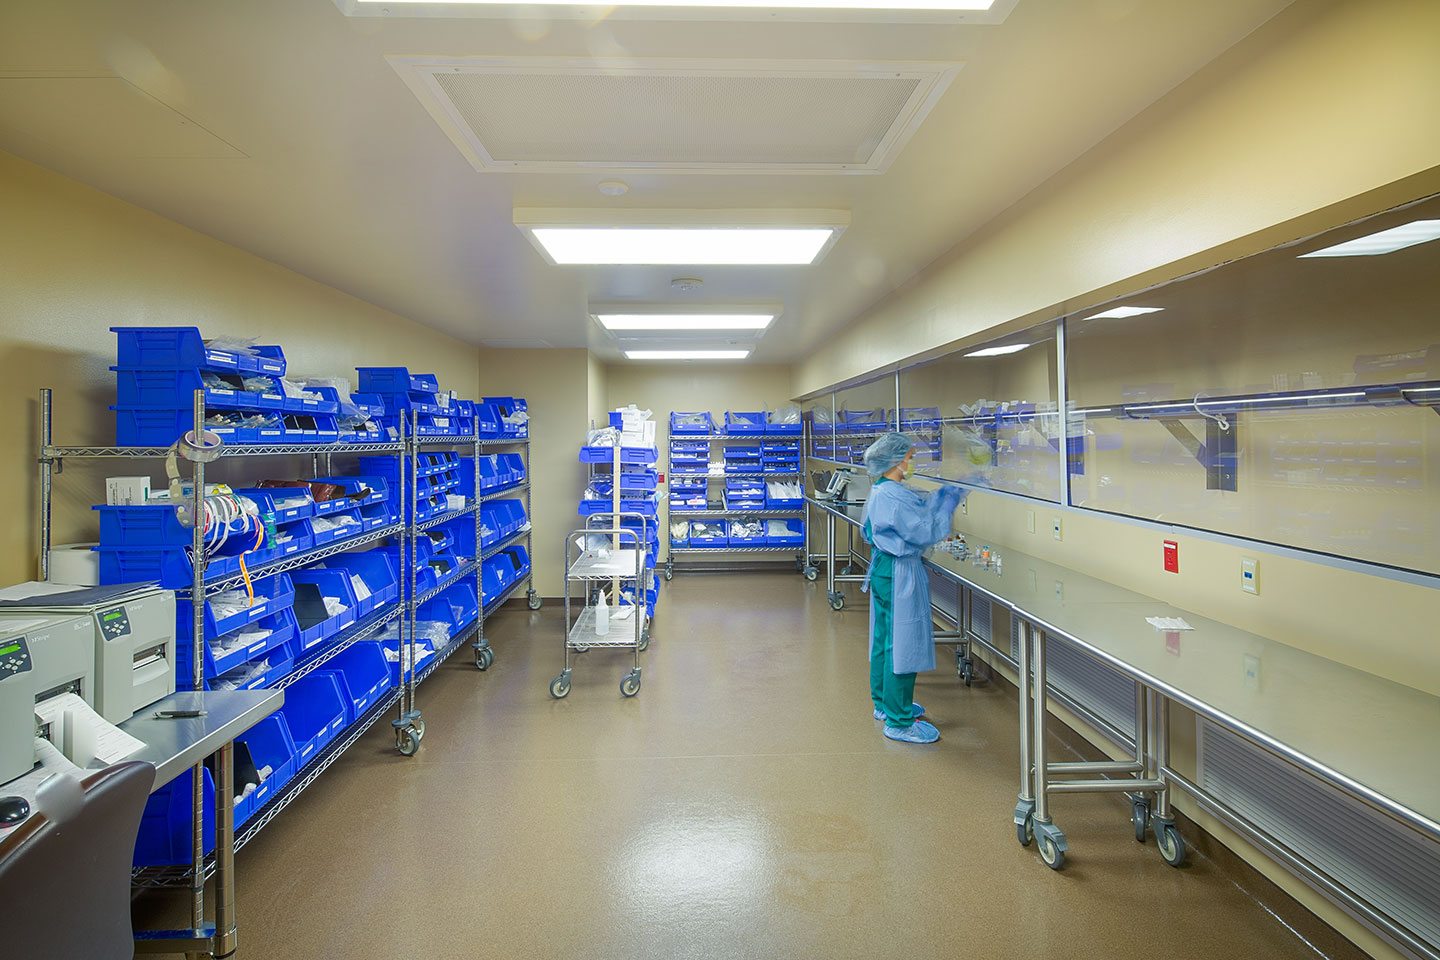 Pharmacies may need to renovate their facilities in order to accommodate new USP 800 standards.